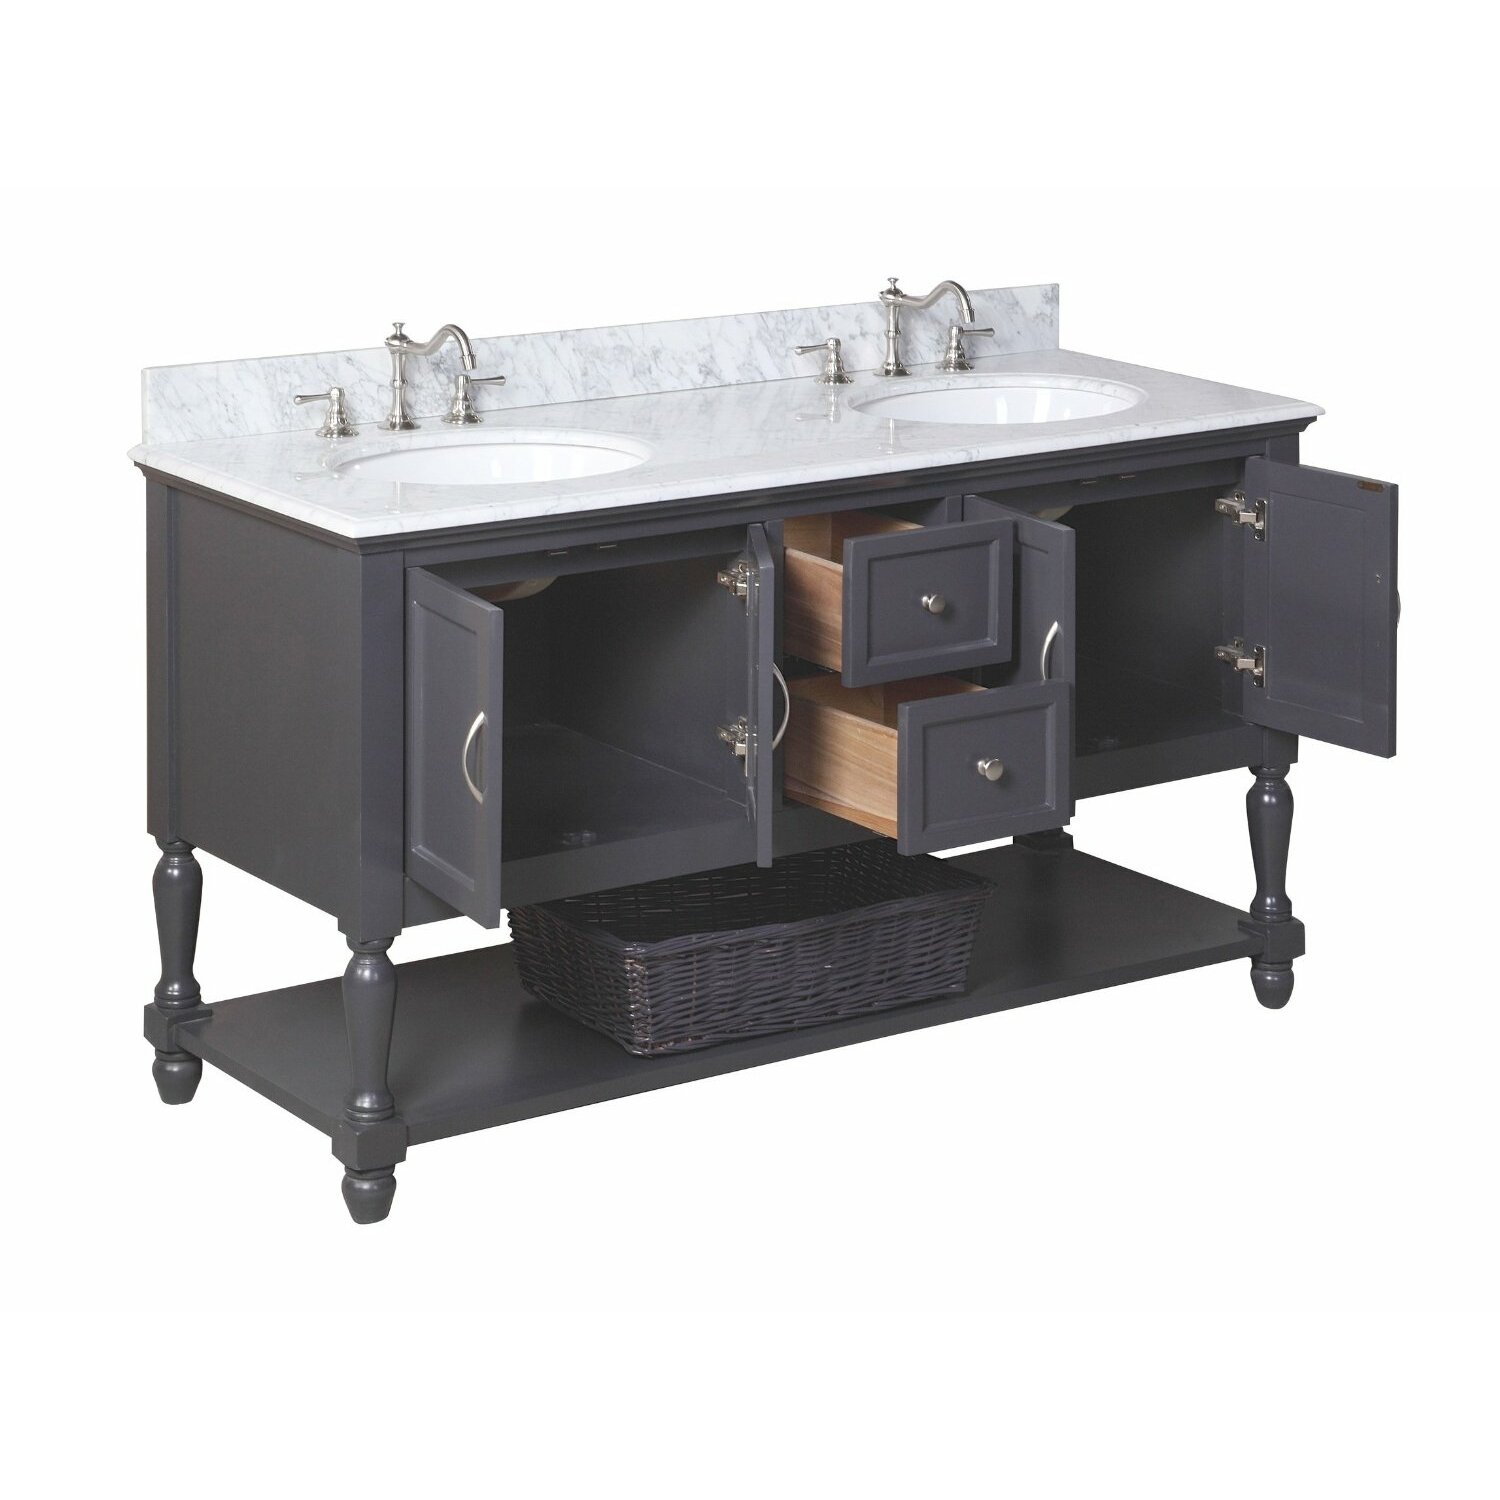 Kbc beverly 60 double bathroom vanity set reviews wayfair for 60s kitchen set